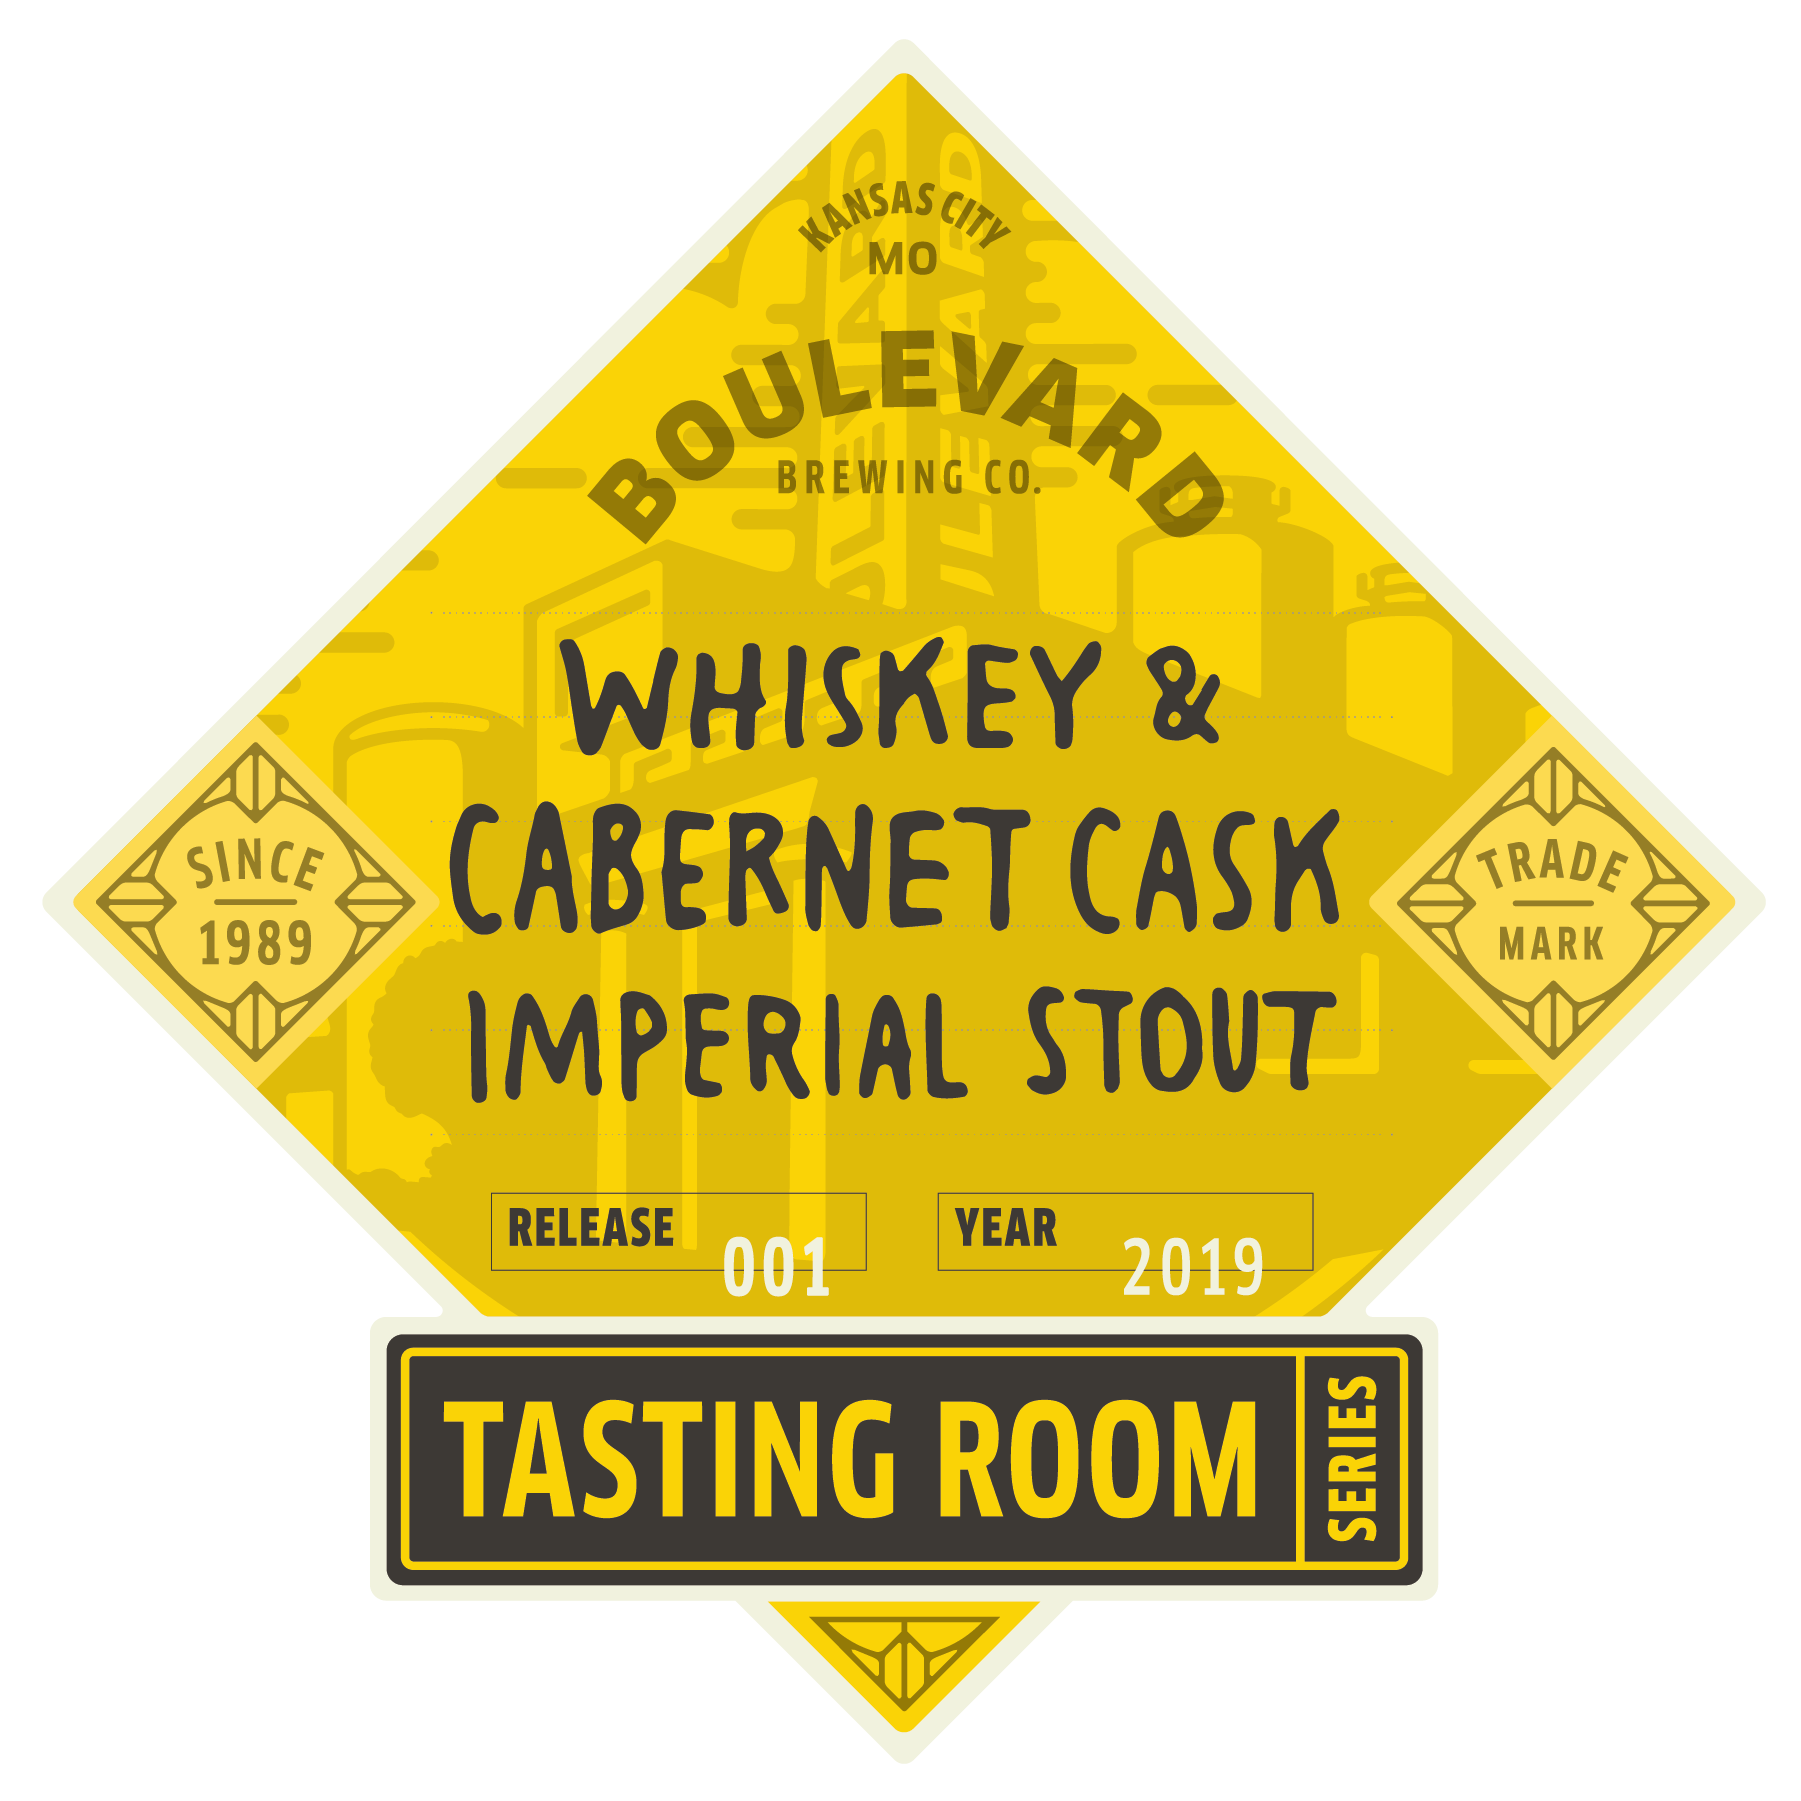 Tasting Room – Whiskey & Cabernet Cask Imperial Stout